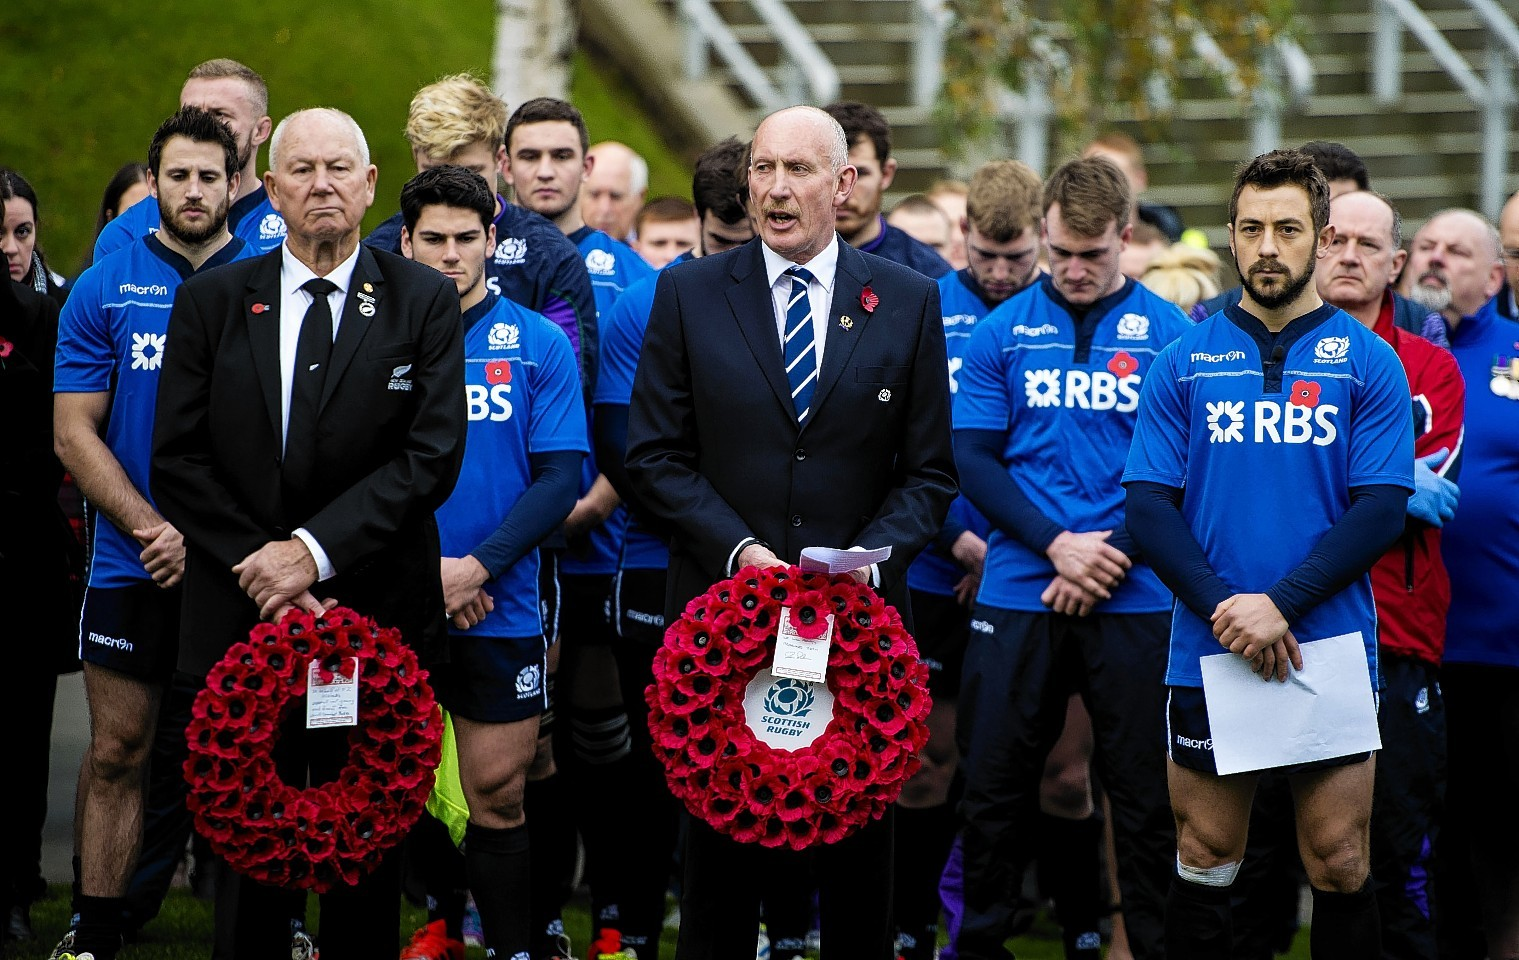 New Zealand Rugby President Ian MacRae, SRU President Iain Rankin and Scotland Captain Greig Laidlaw pay their respects to the fallen British soldiers next to War Memorial at Murrayfield.